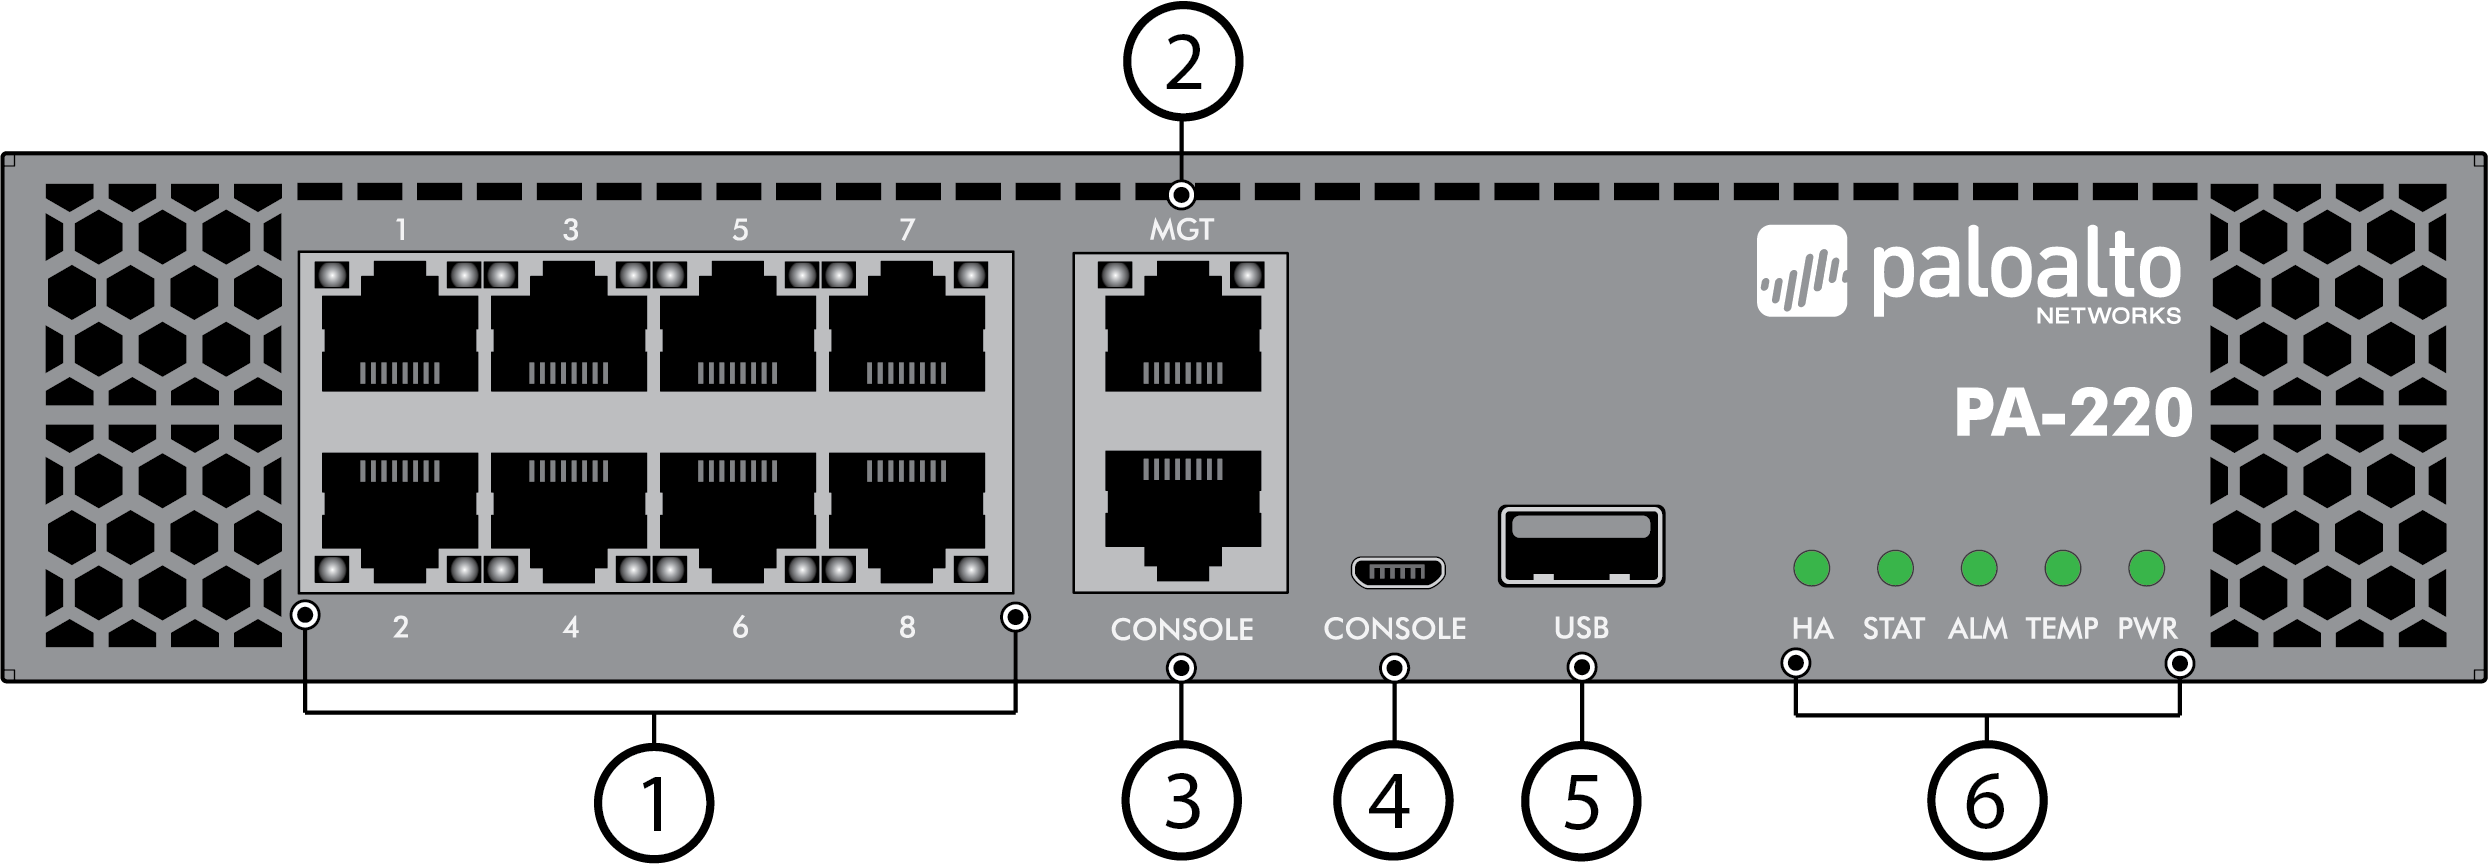 front-panel-220.png